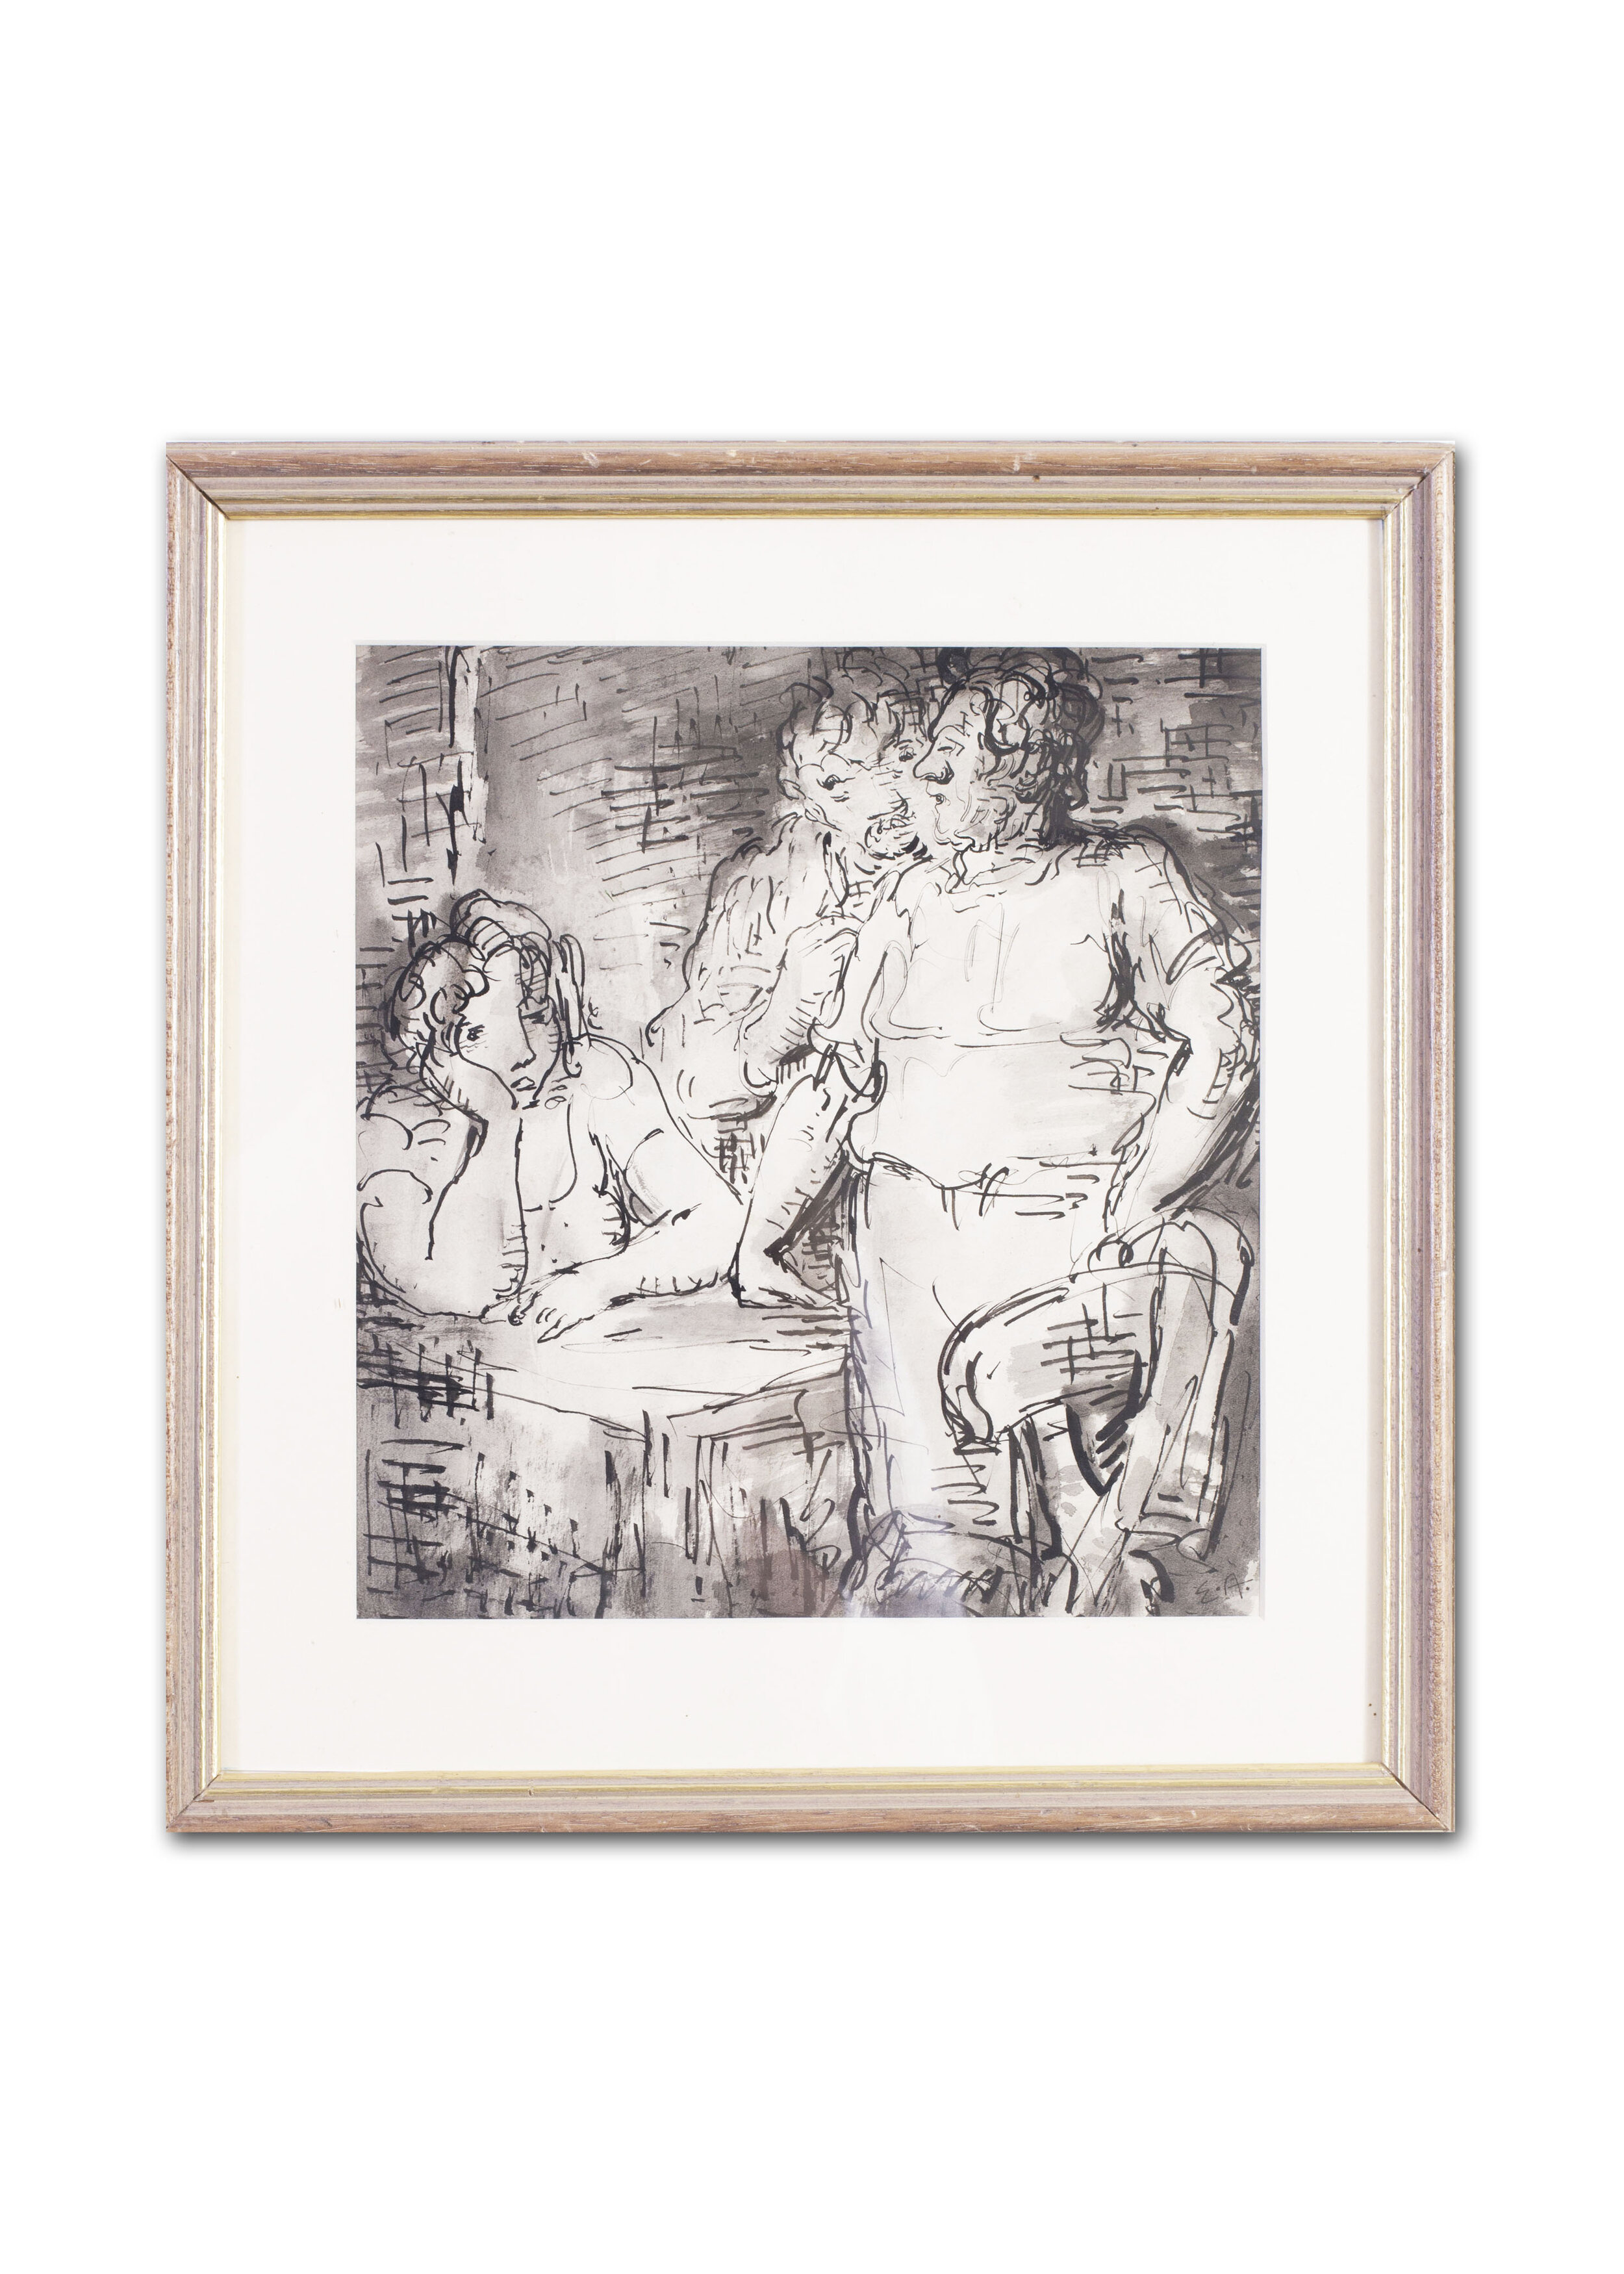 Edward Ardizzone      A discussion in an inn     Price: £1,450